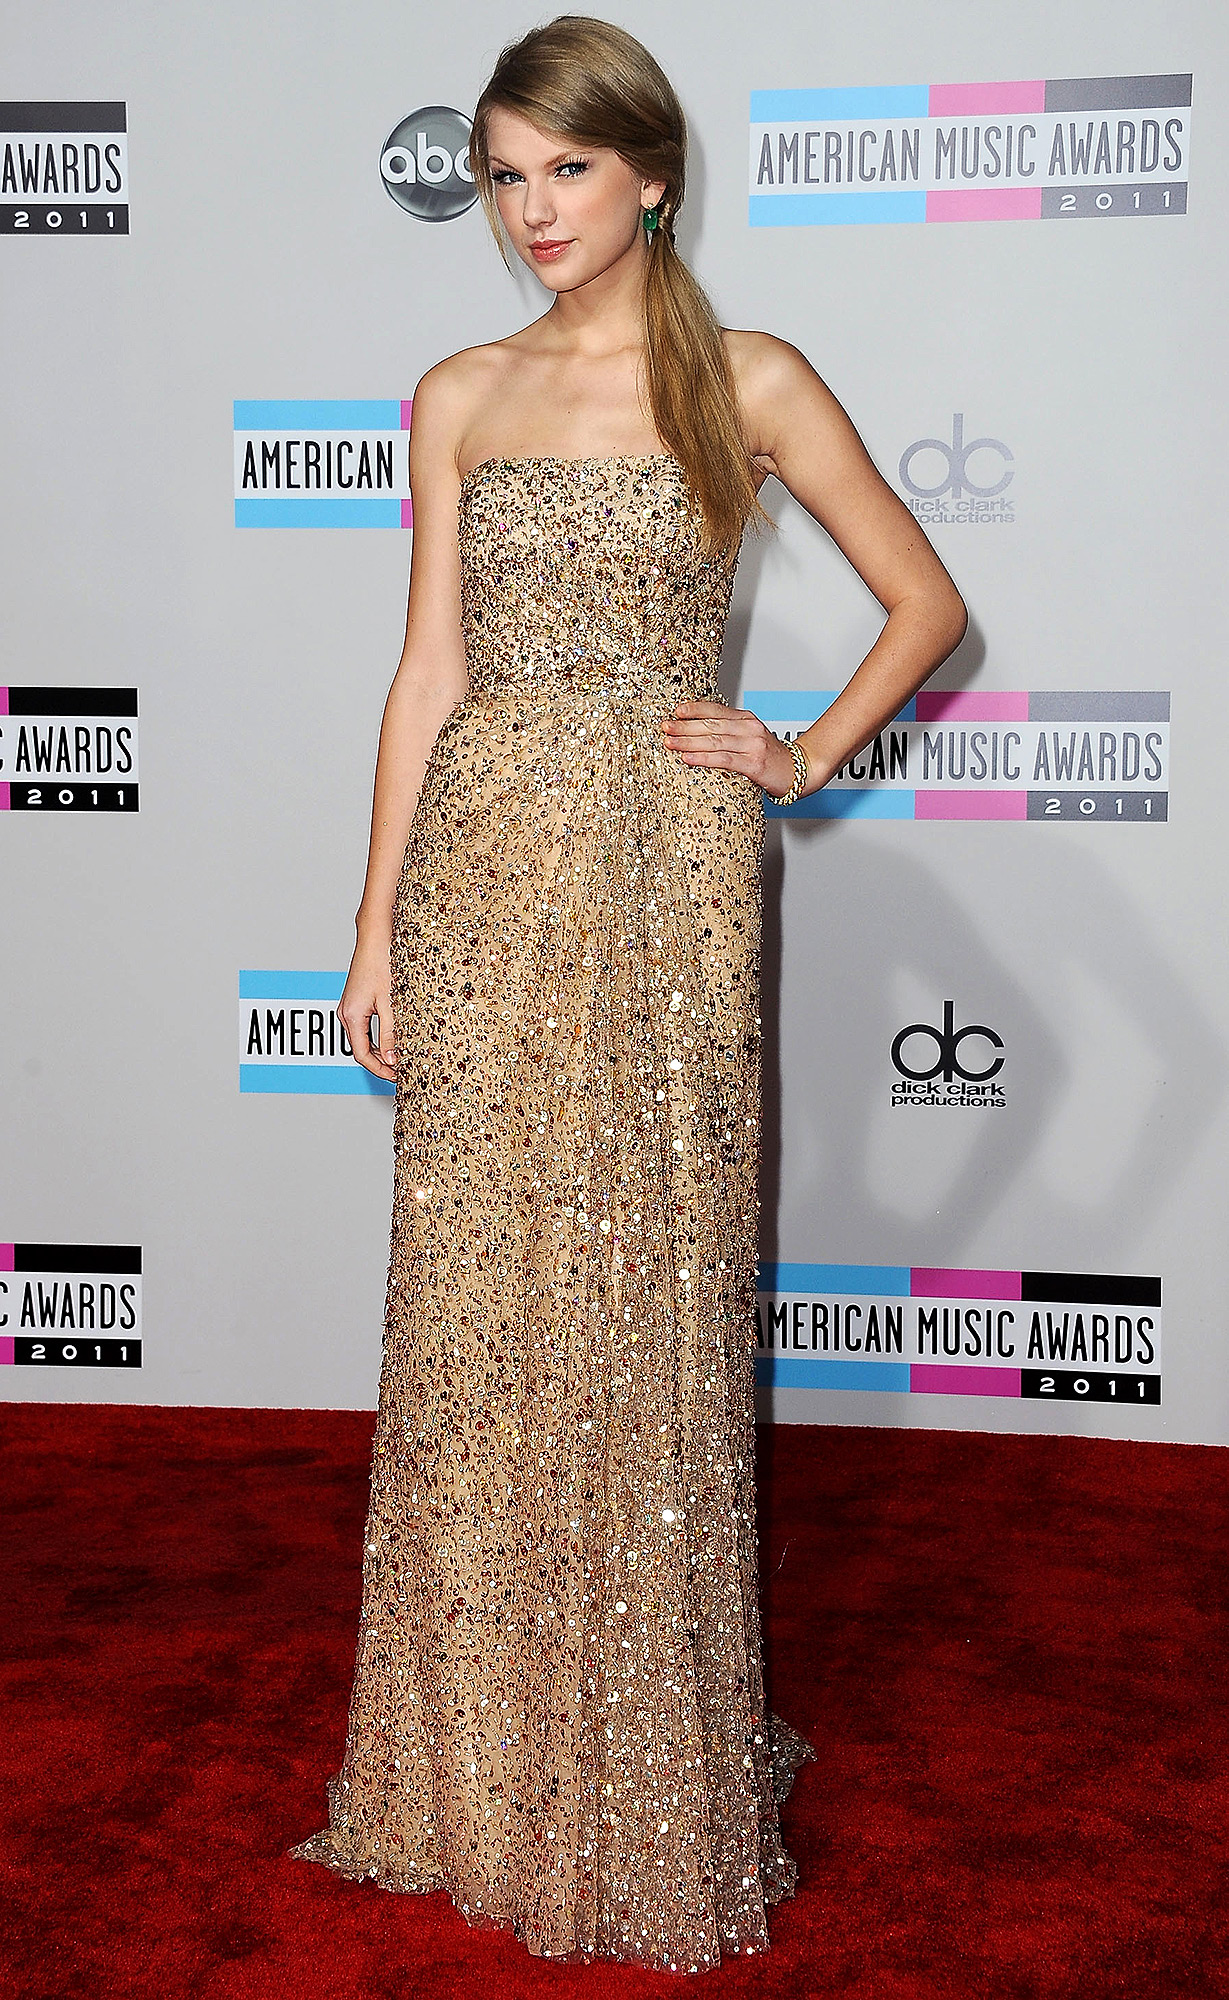 Singer Taylor Swift arrives at the American Music Awards